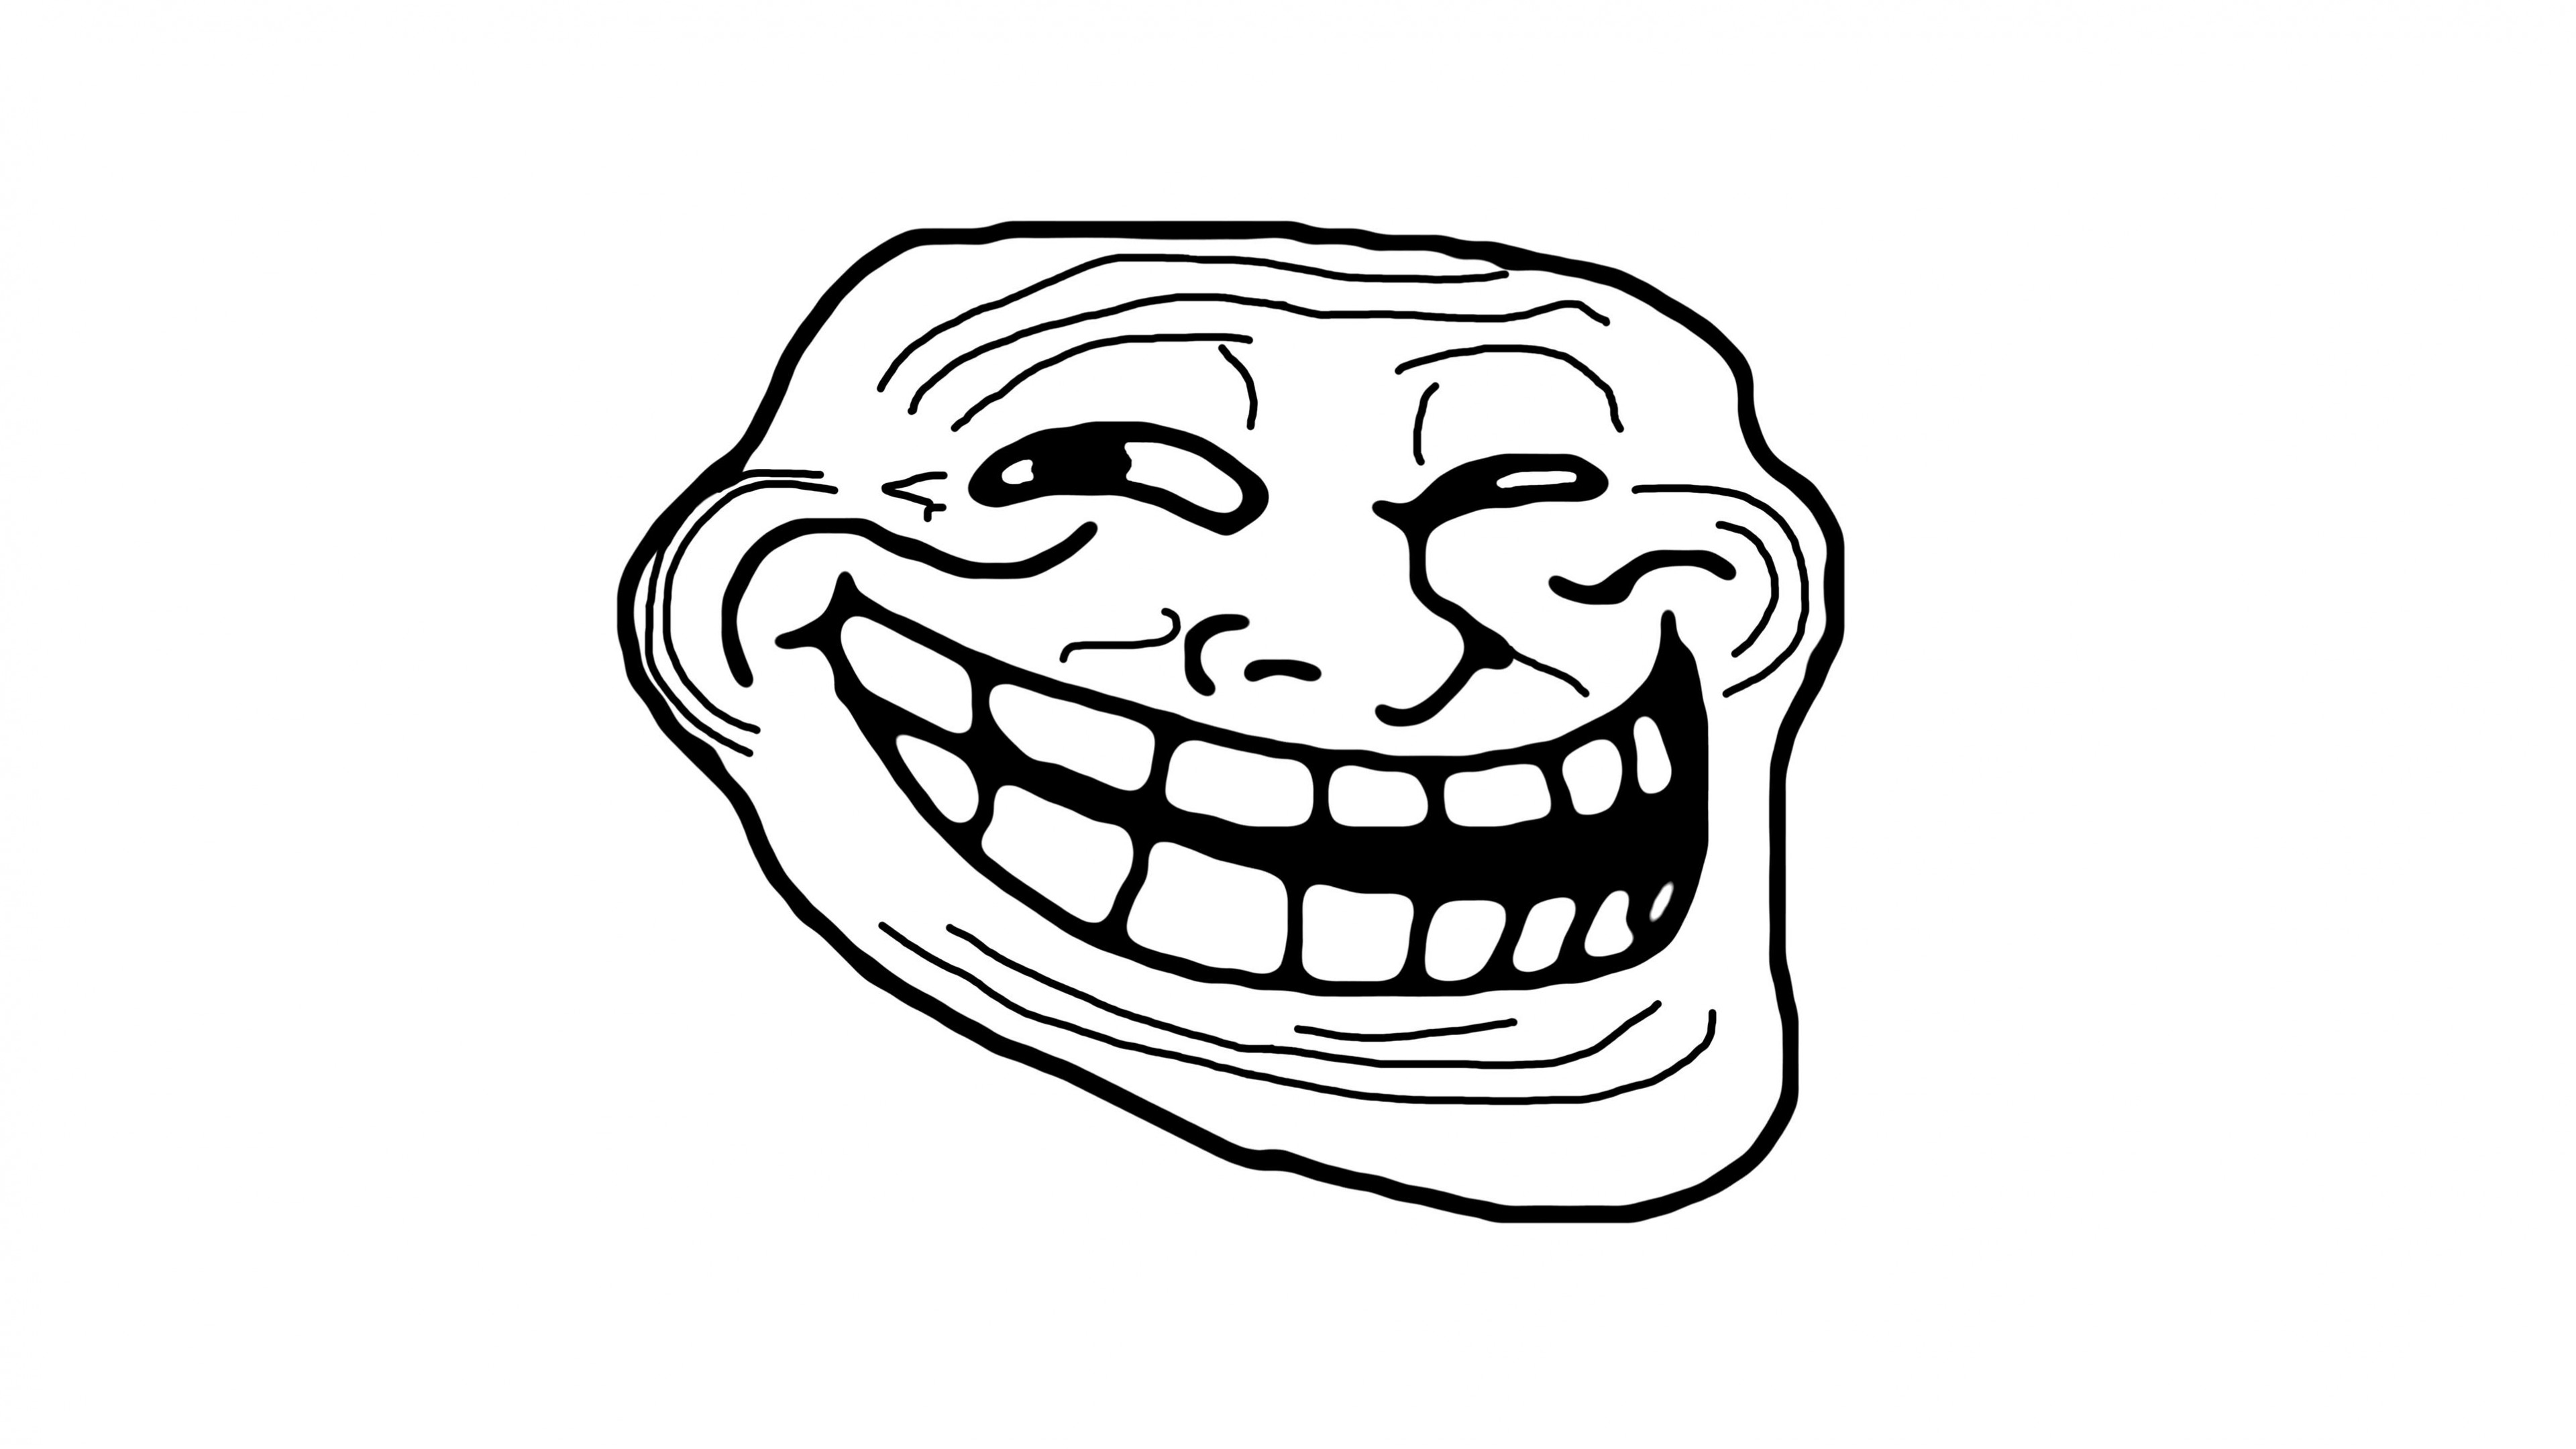 Troll Faces Wallpaper face wallpapers, photo...